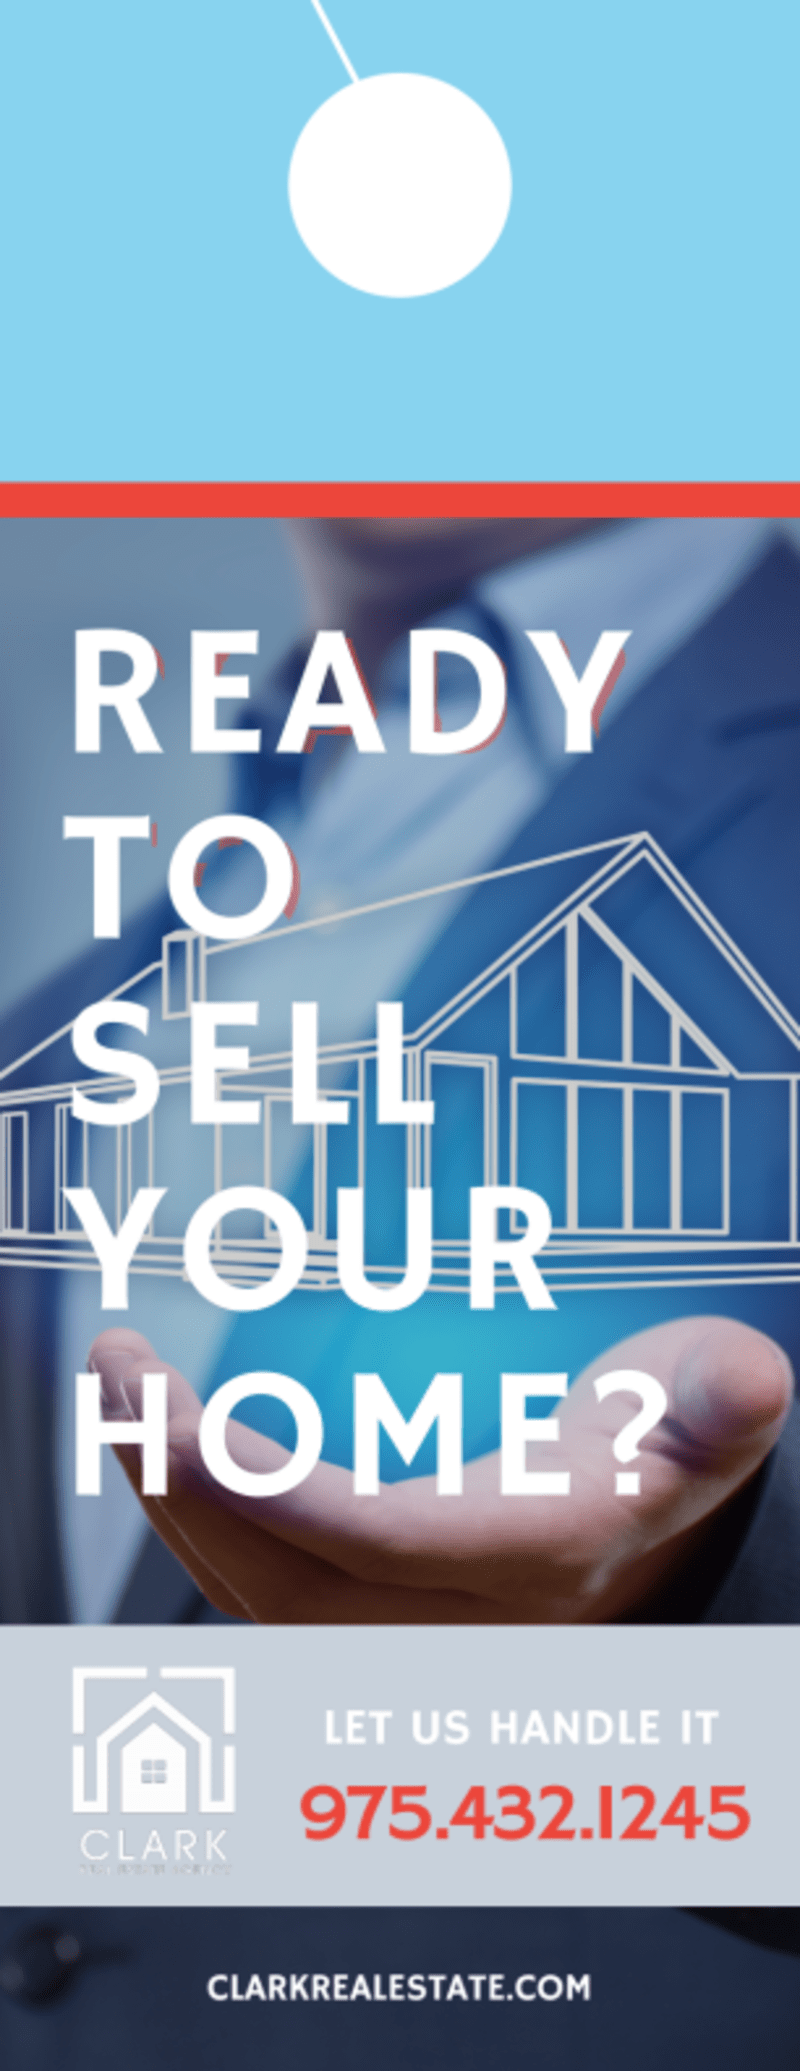 Ready To Sell Your Home - Door Hanger Template Preview 2